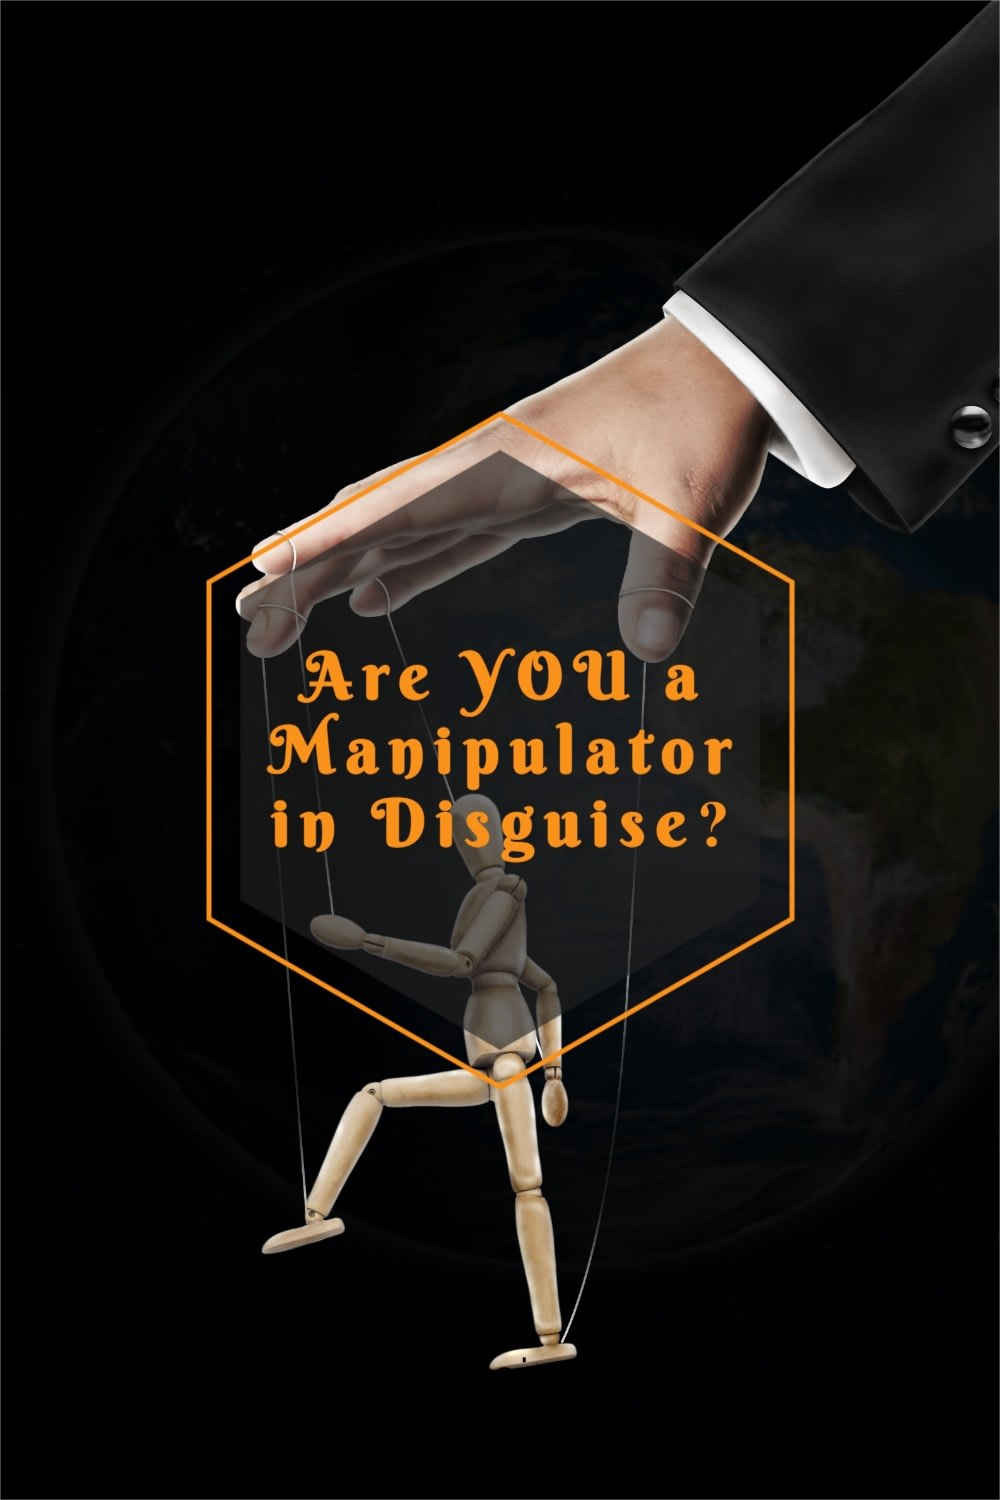 Are YOU a Manipulator in Disguise?